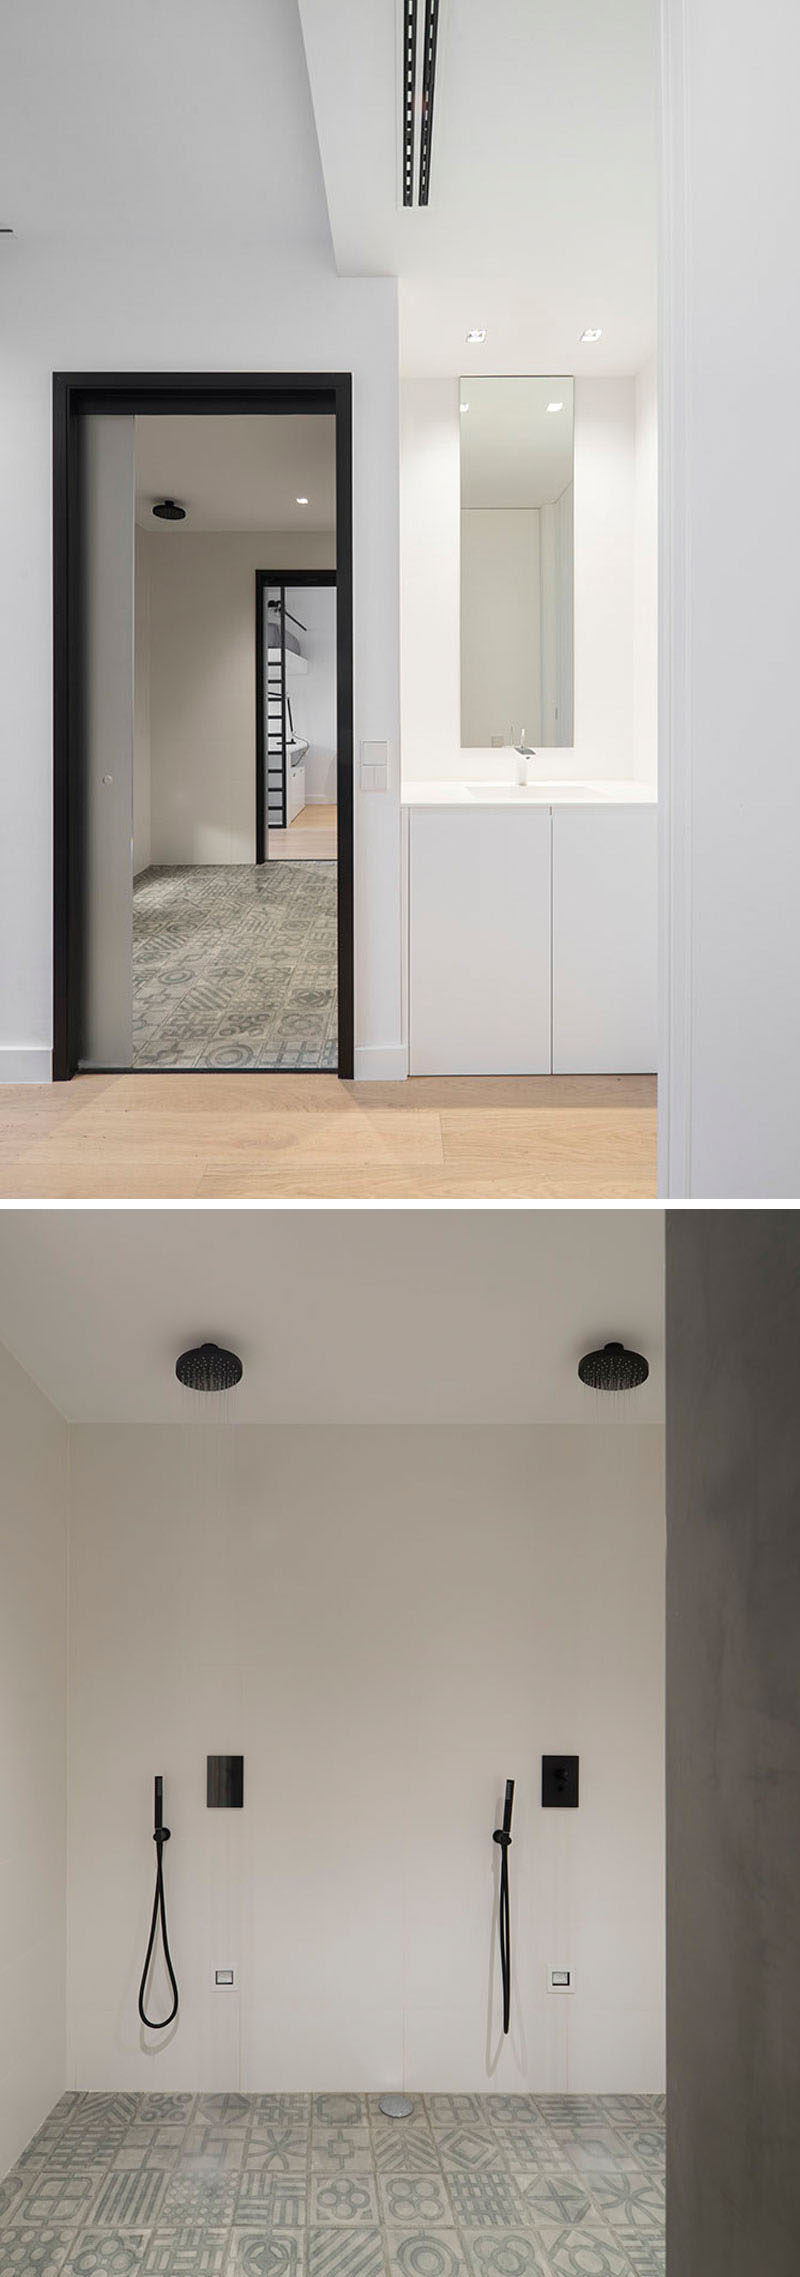 This common bathroom between two bedrooms has dual shower heads in a single wet room. Outside the bathroom there's a simple built-in vanity area.